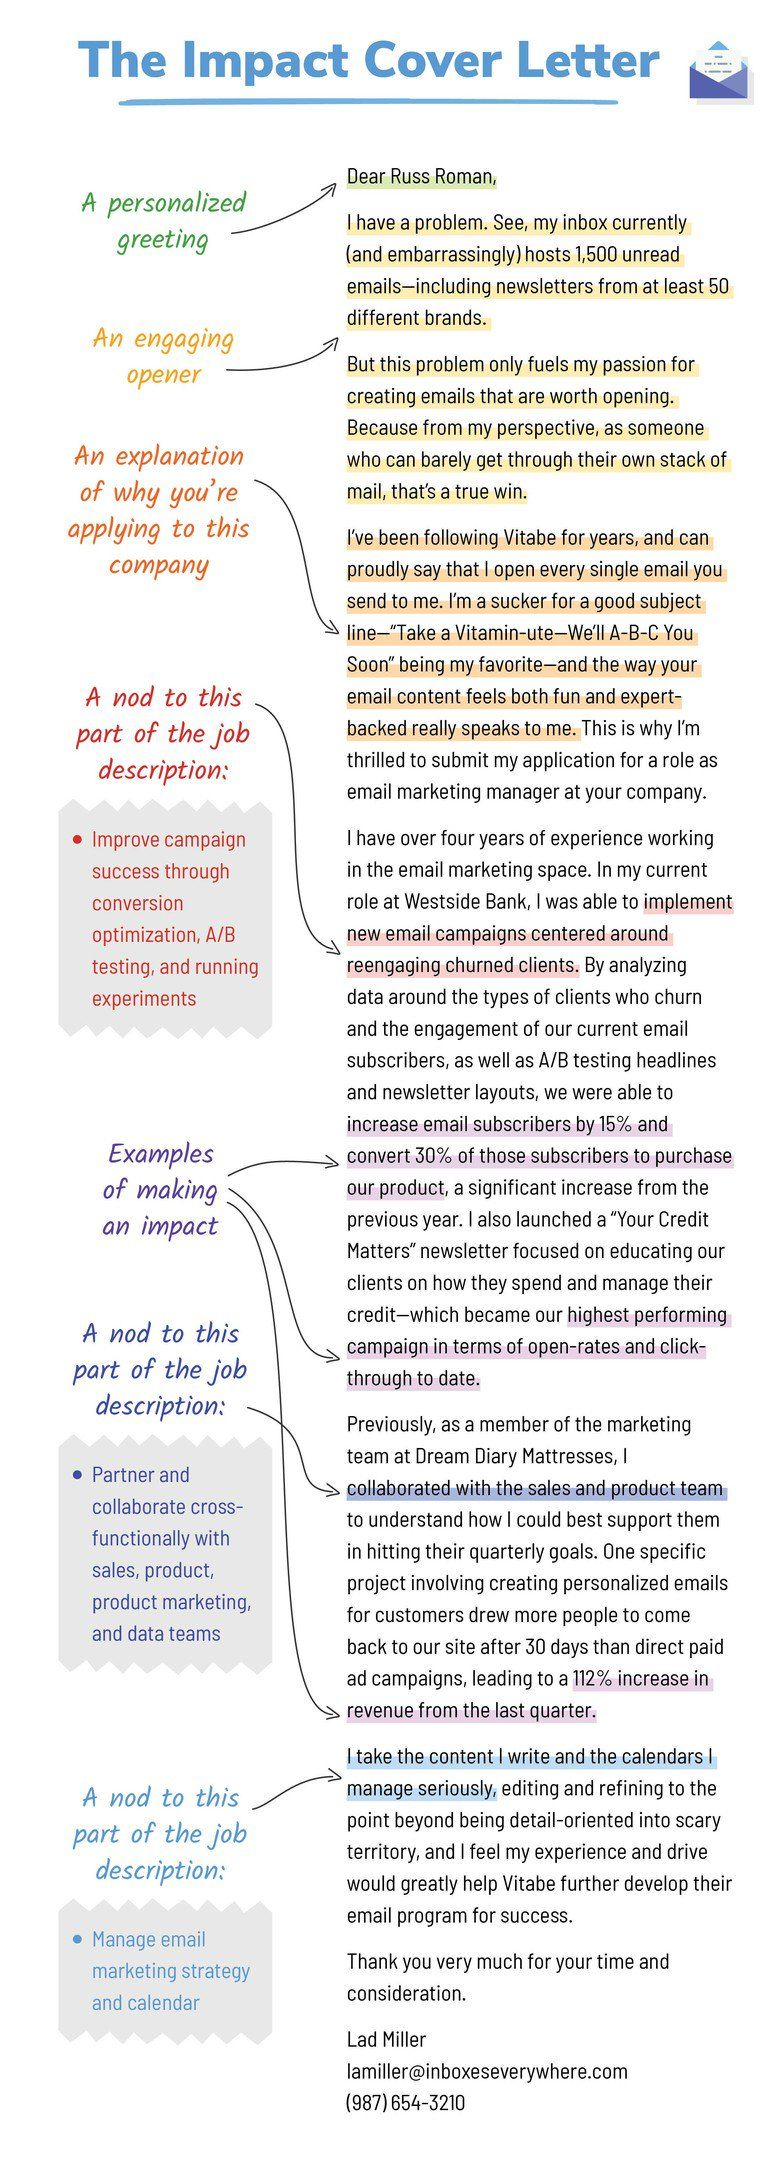 Cover Letter Examples for Every Type of Job Seeker